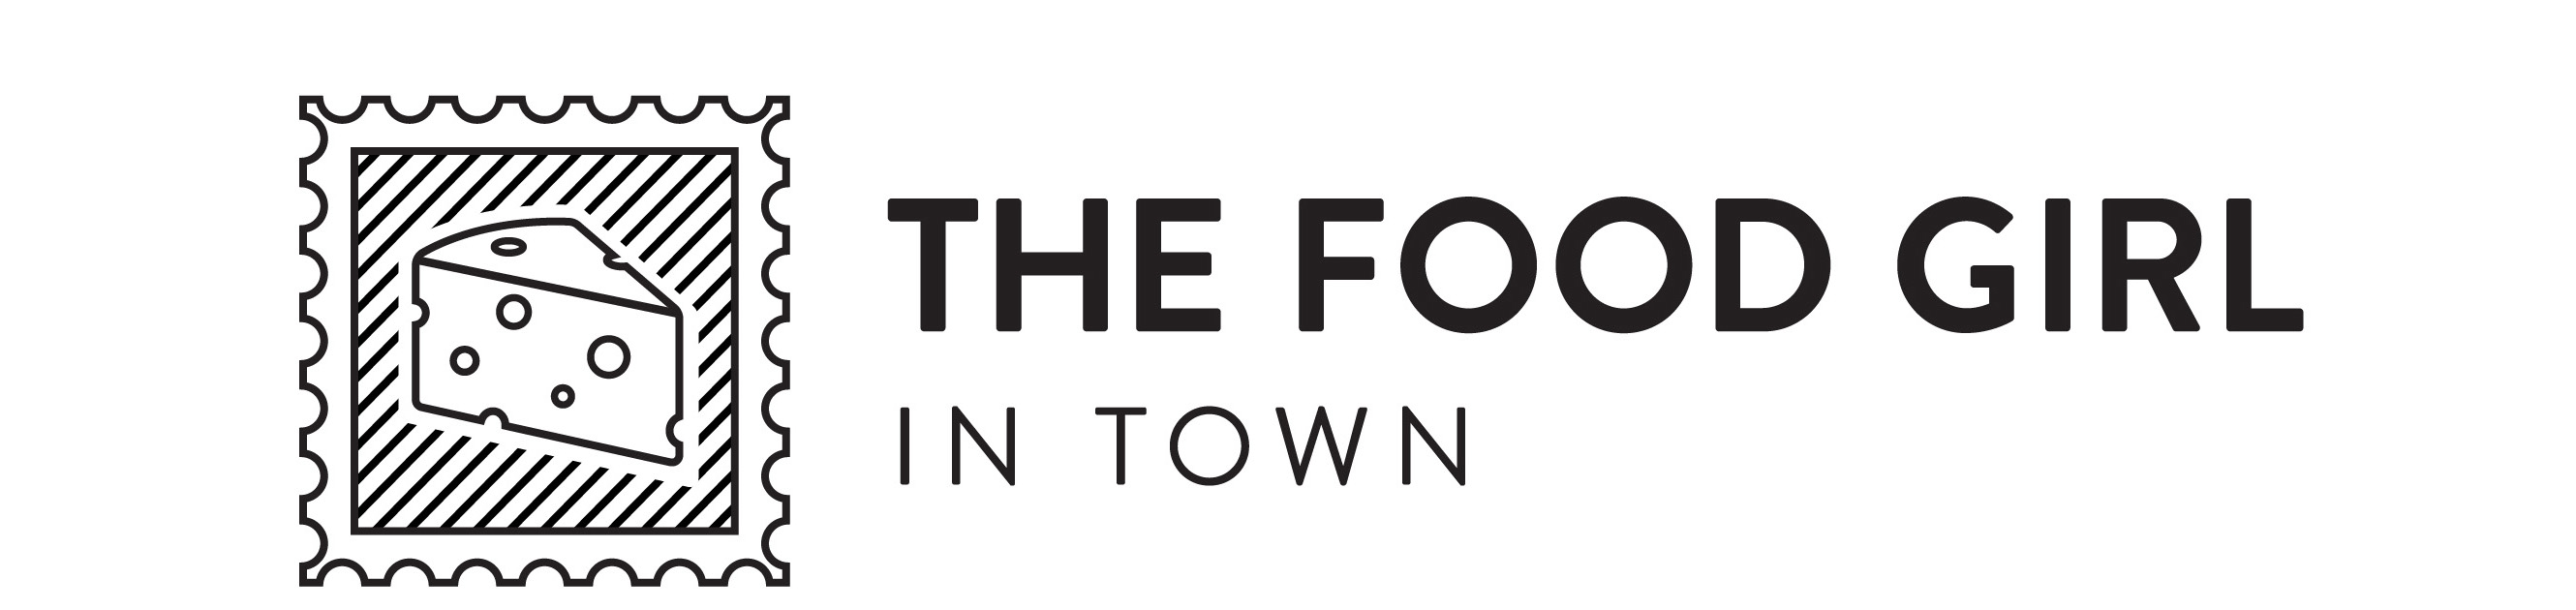 The Food Girl in Town | Food & Travel